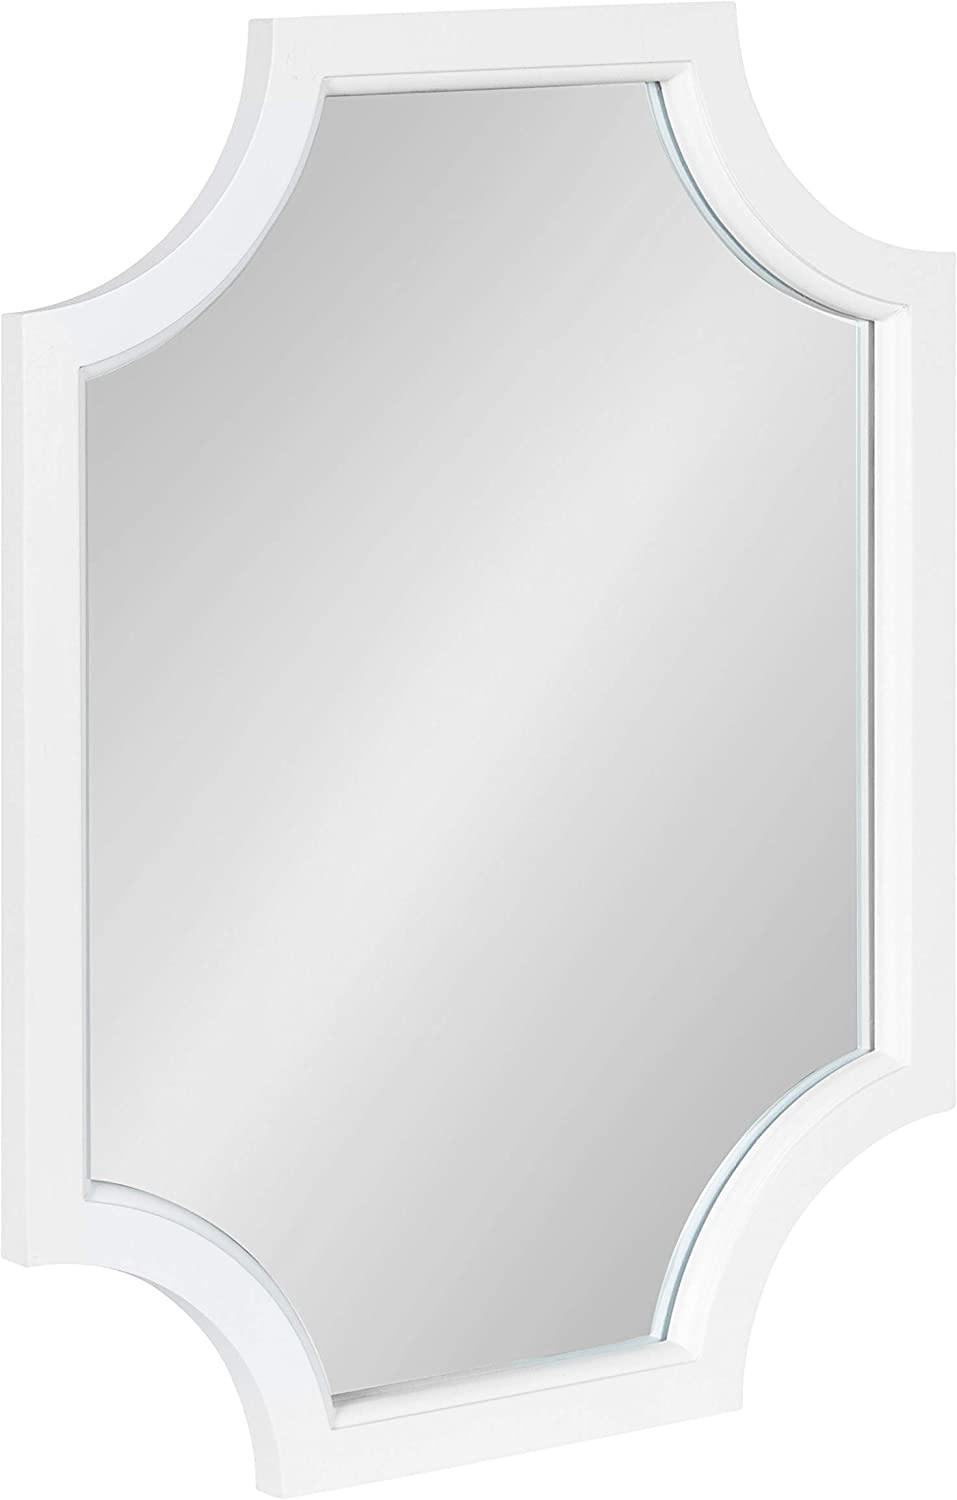 Don't miss the campaign Kate and Max 60% OFF Laurel Hogan Modern Scallop 18 x White Mirror 24 Wall